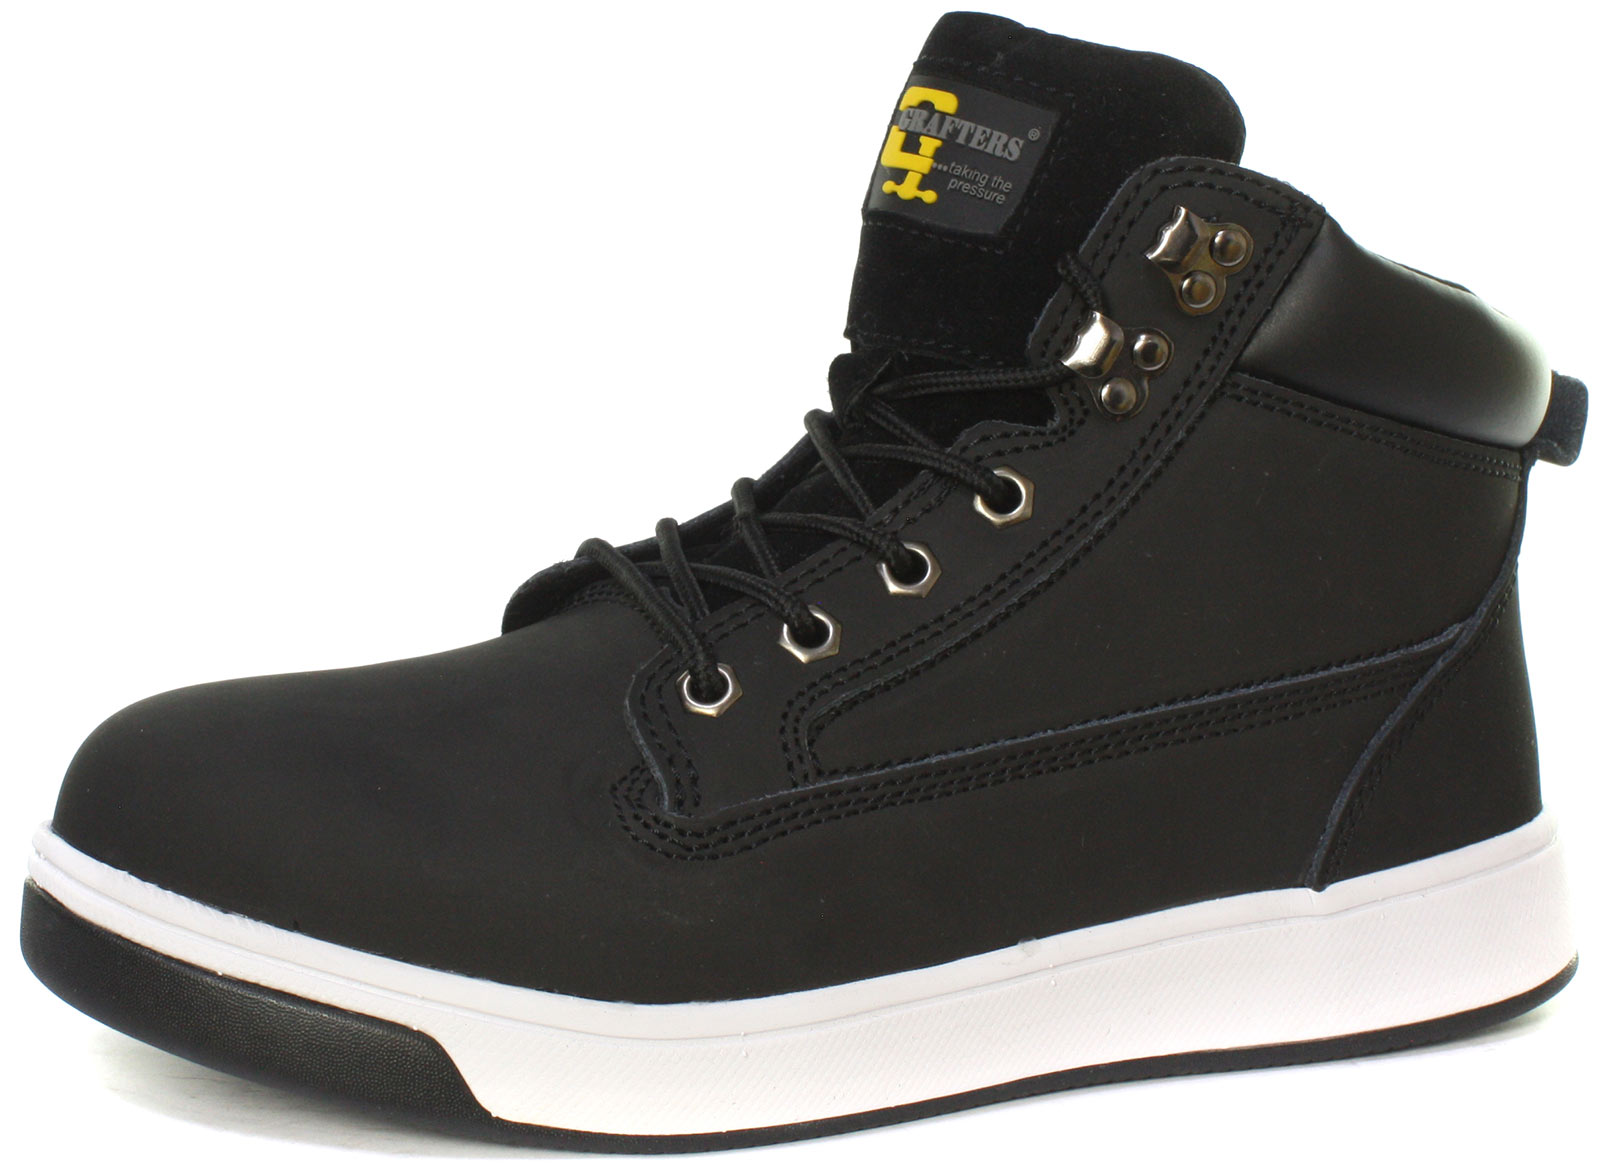 New-Grafters-M057A-Unisex-Safety-Trainer-Boots-ALL-SIZES